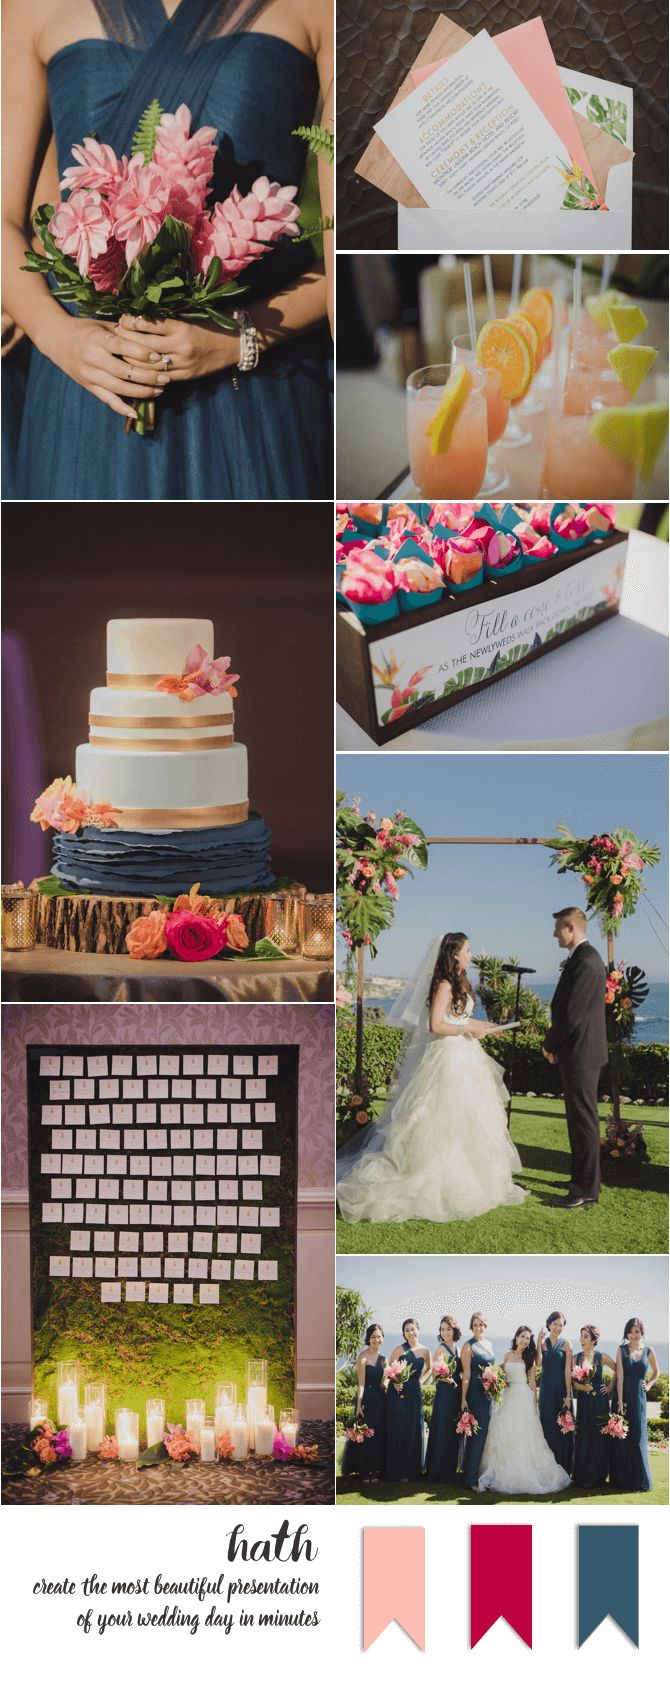 Lapis Blue, Fuscia and Pink Laguna Beach, CA wedding at the Montage Hotel   Photography: Iris & Light   www.hathwed.com - Create the most beautiful online presentation of your wedding day in minutes to share with family & friends